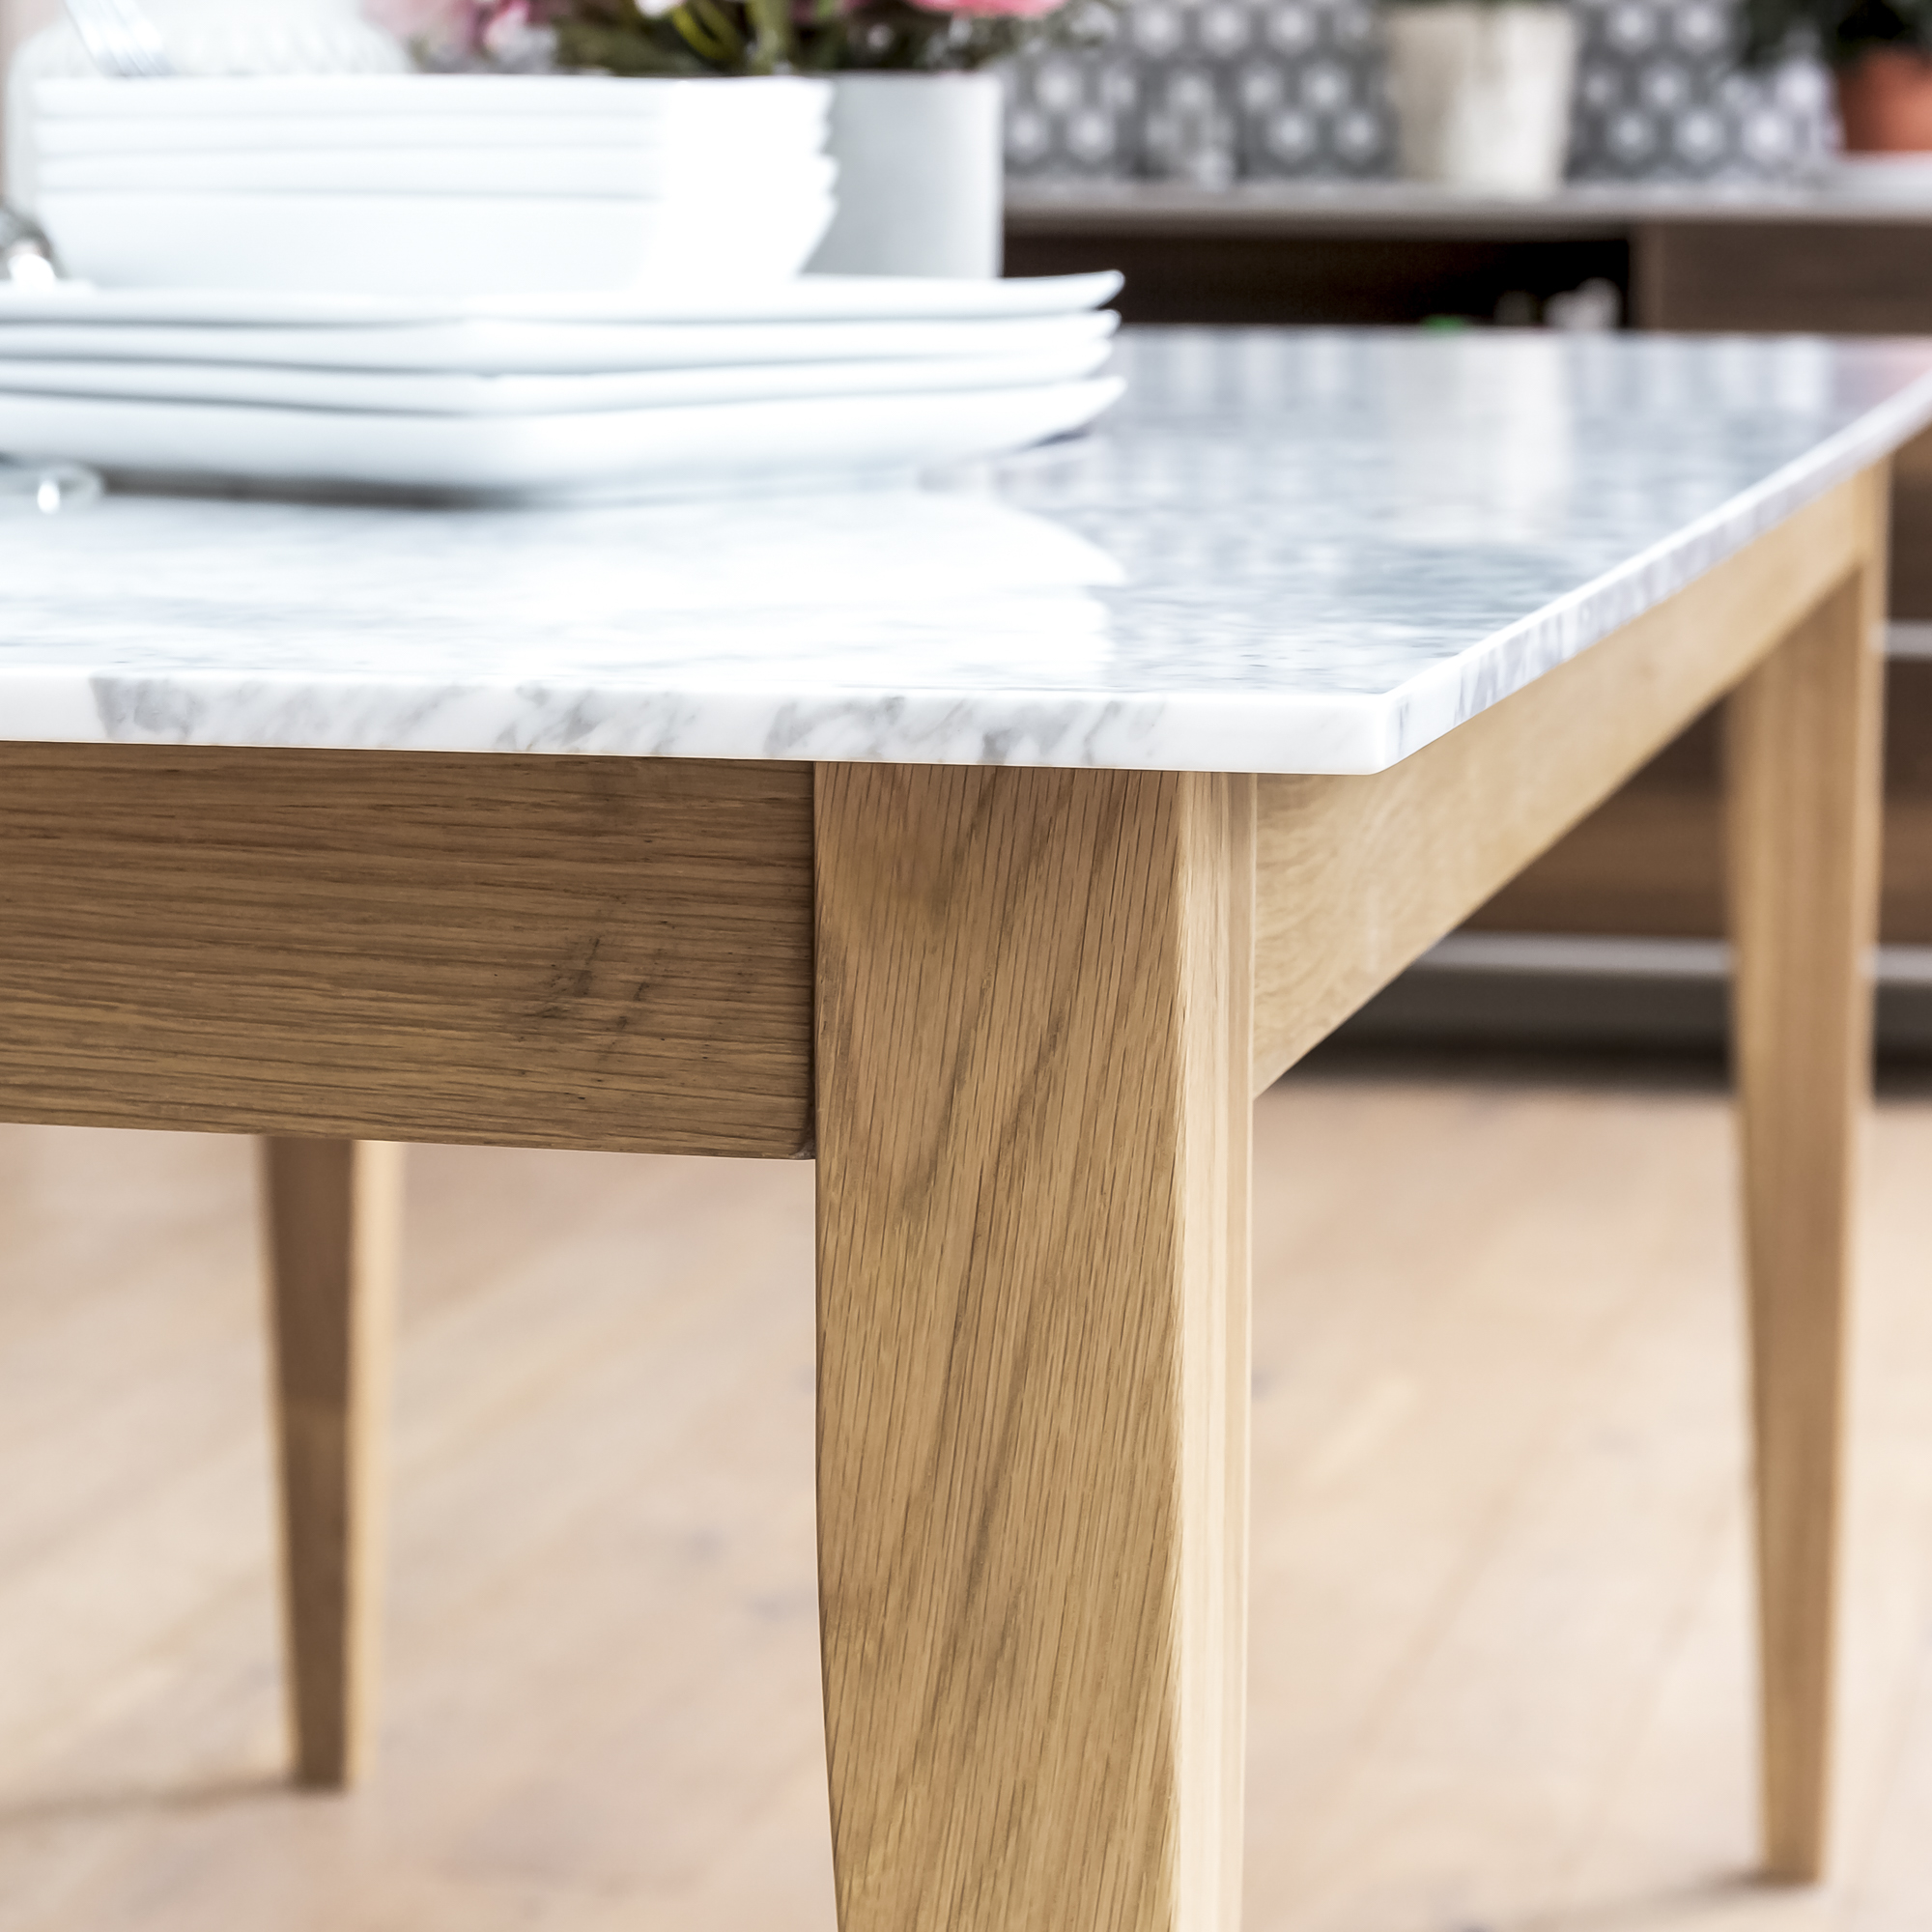 1.8m Oak Dining Table with White Carrara Marble Top